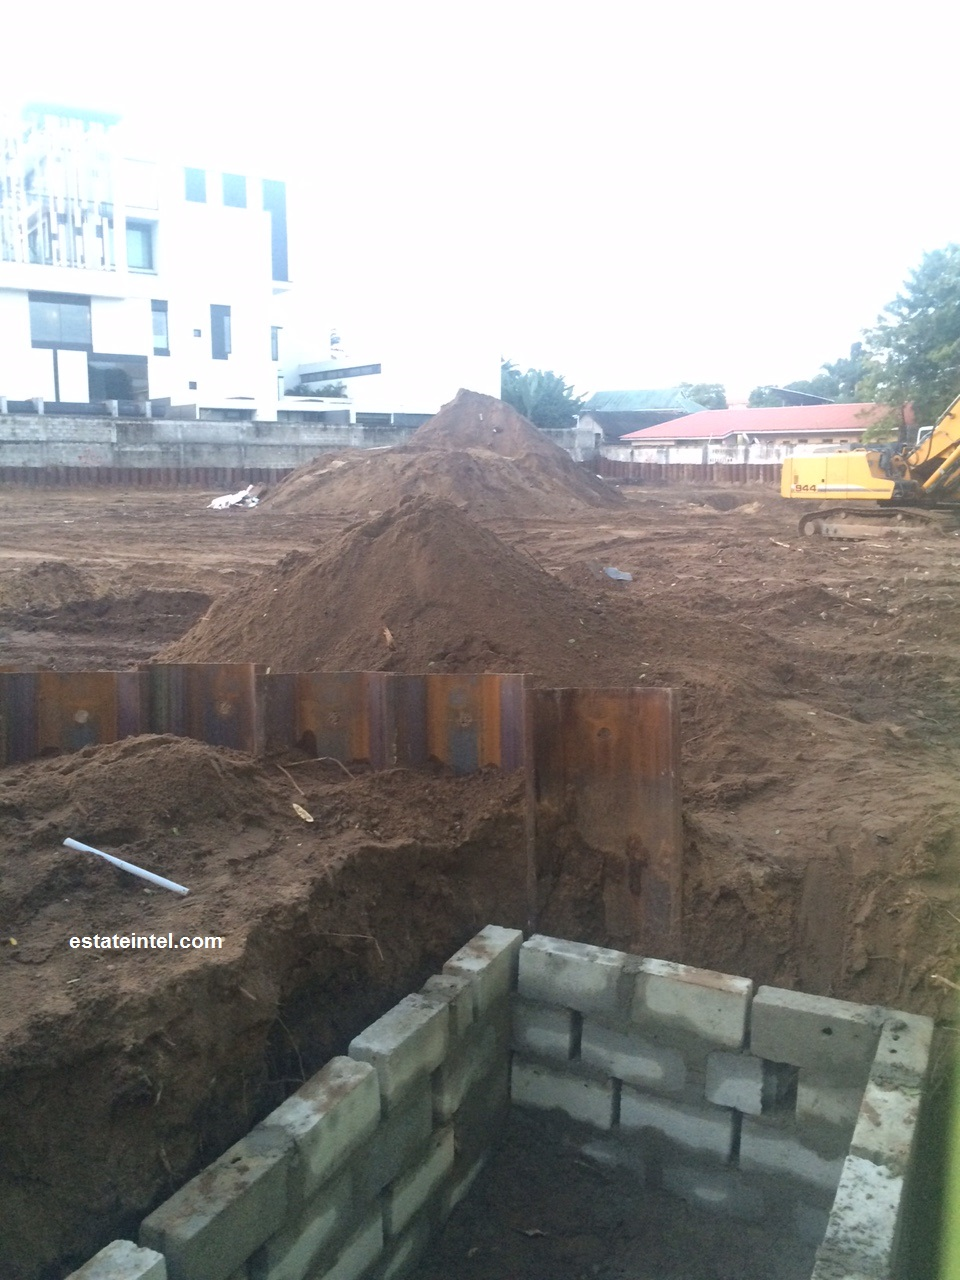 August 2015. Updated: Development: No. 4 Bourdillon, Ikoyi - Lagos